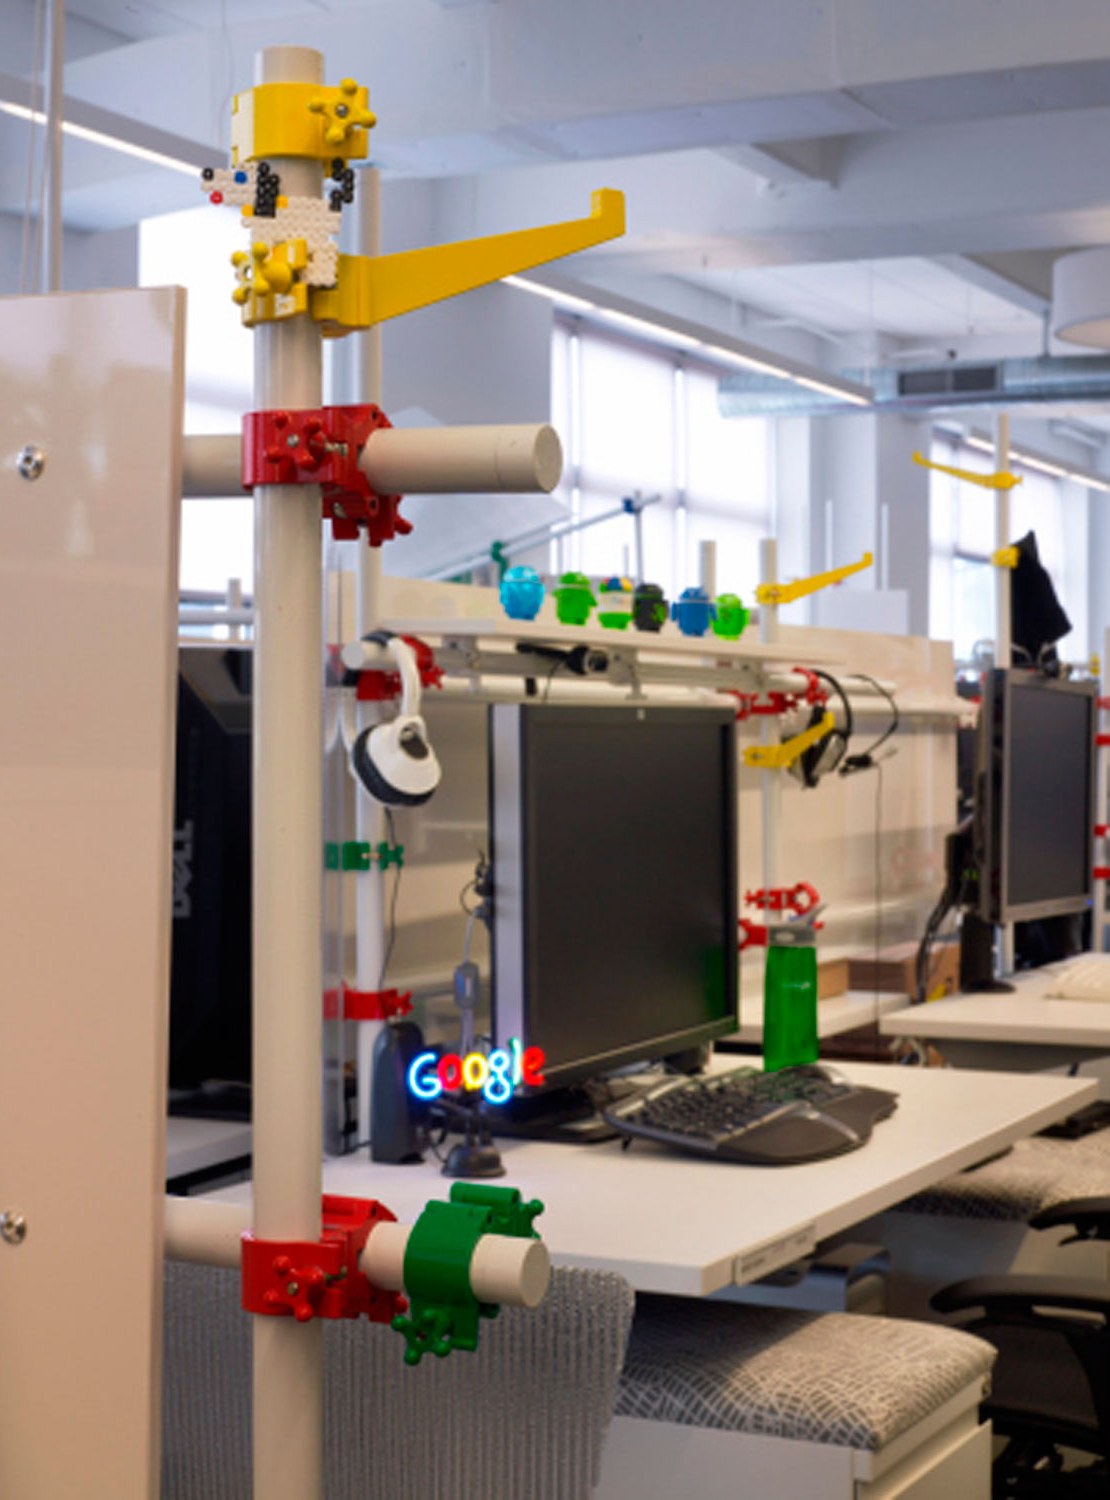 Google's build-your-own desks that allow employees to completely customize their workspaces.